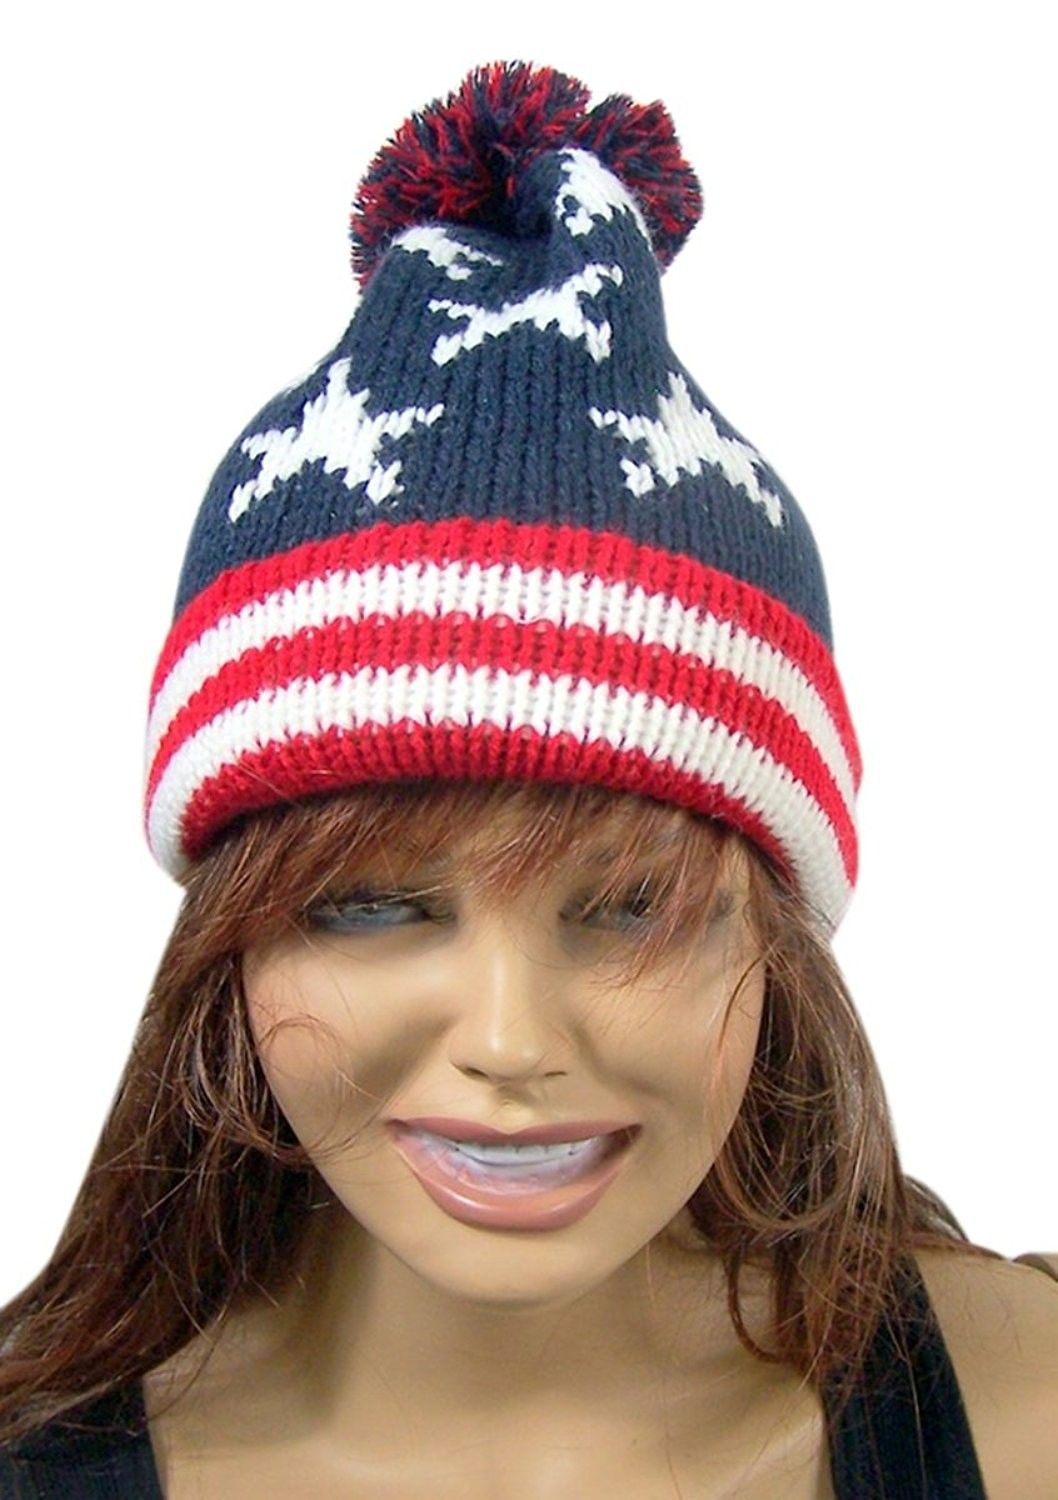 Red White And Blue Patriotic American Flag Knit Cuffed Beanie Hat Cs183gl77wo Beanie Hats Hats Knitting